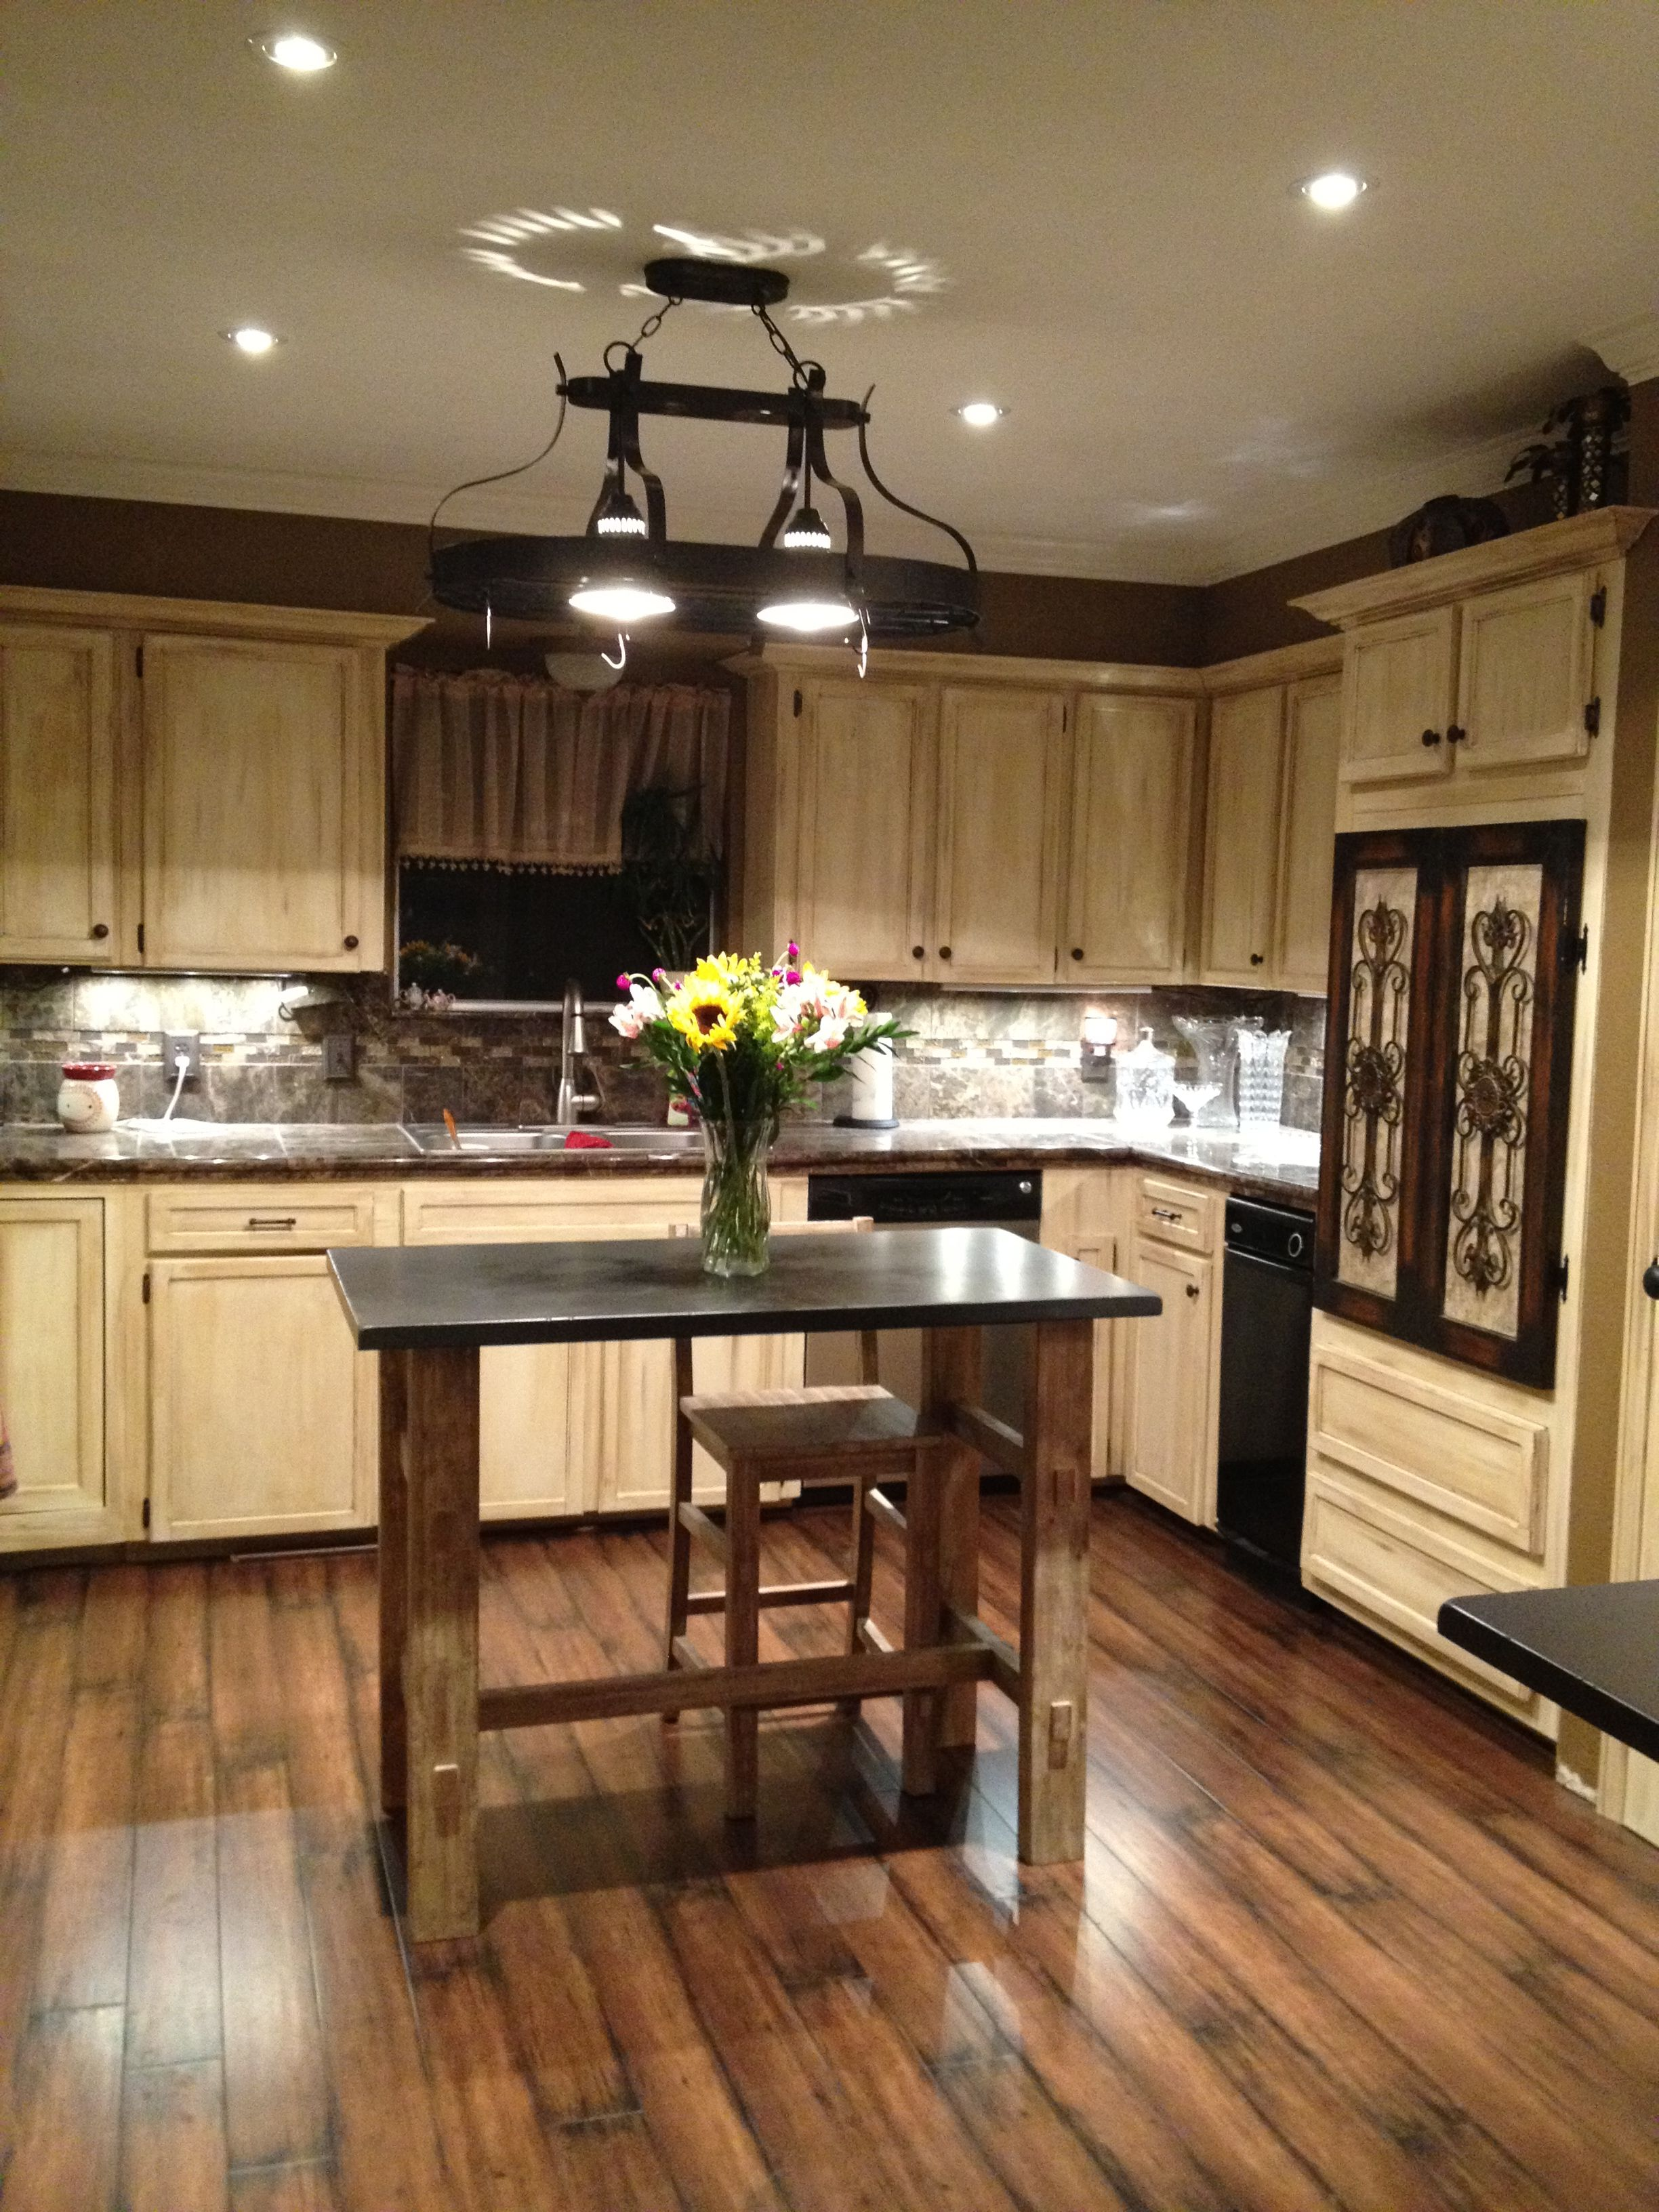 Painted kitchen cabinets using gel stain and polishing wax ...